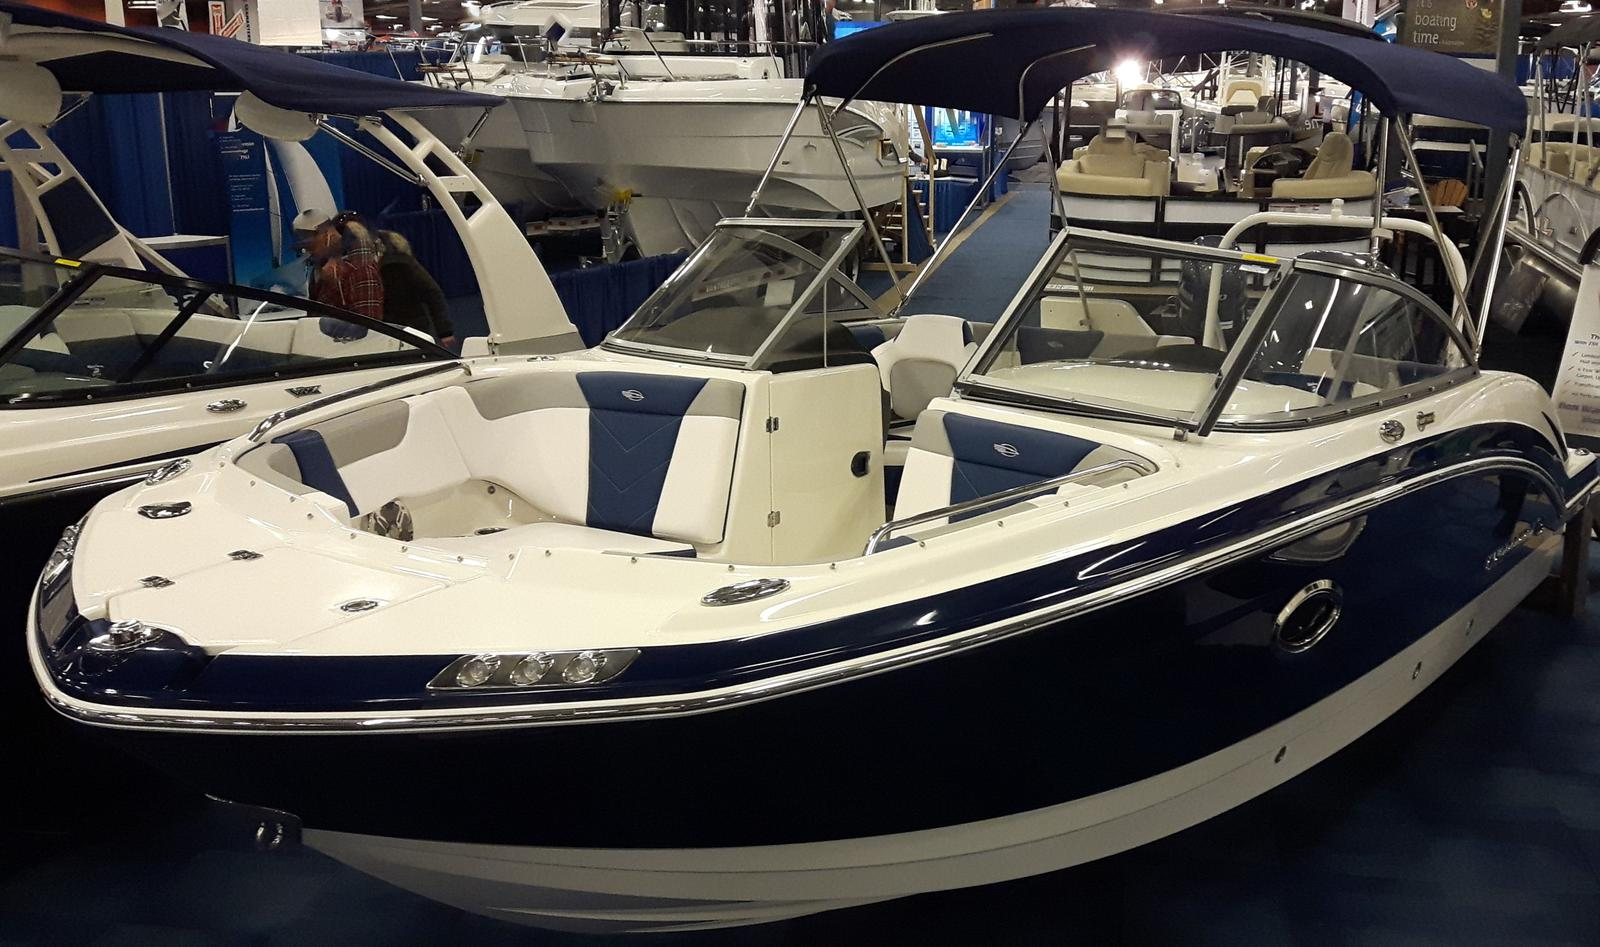 Inventory from Chaparral and Sea-Doo Sport Boats Mahone